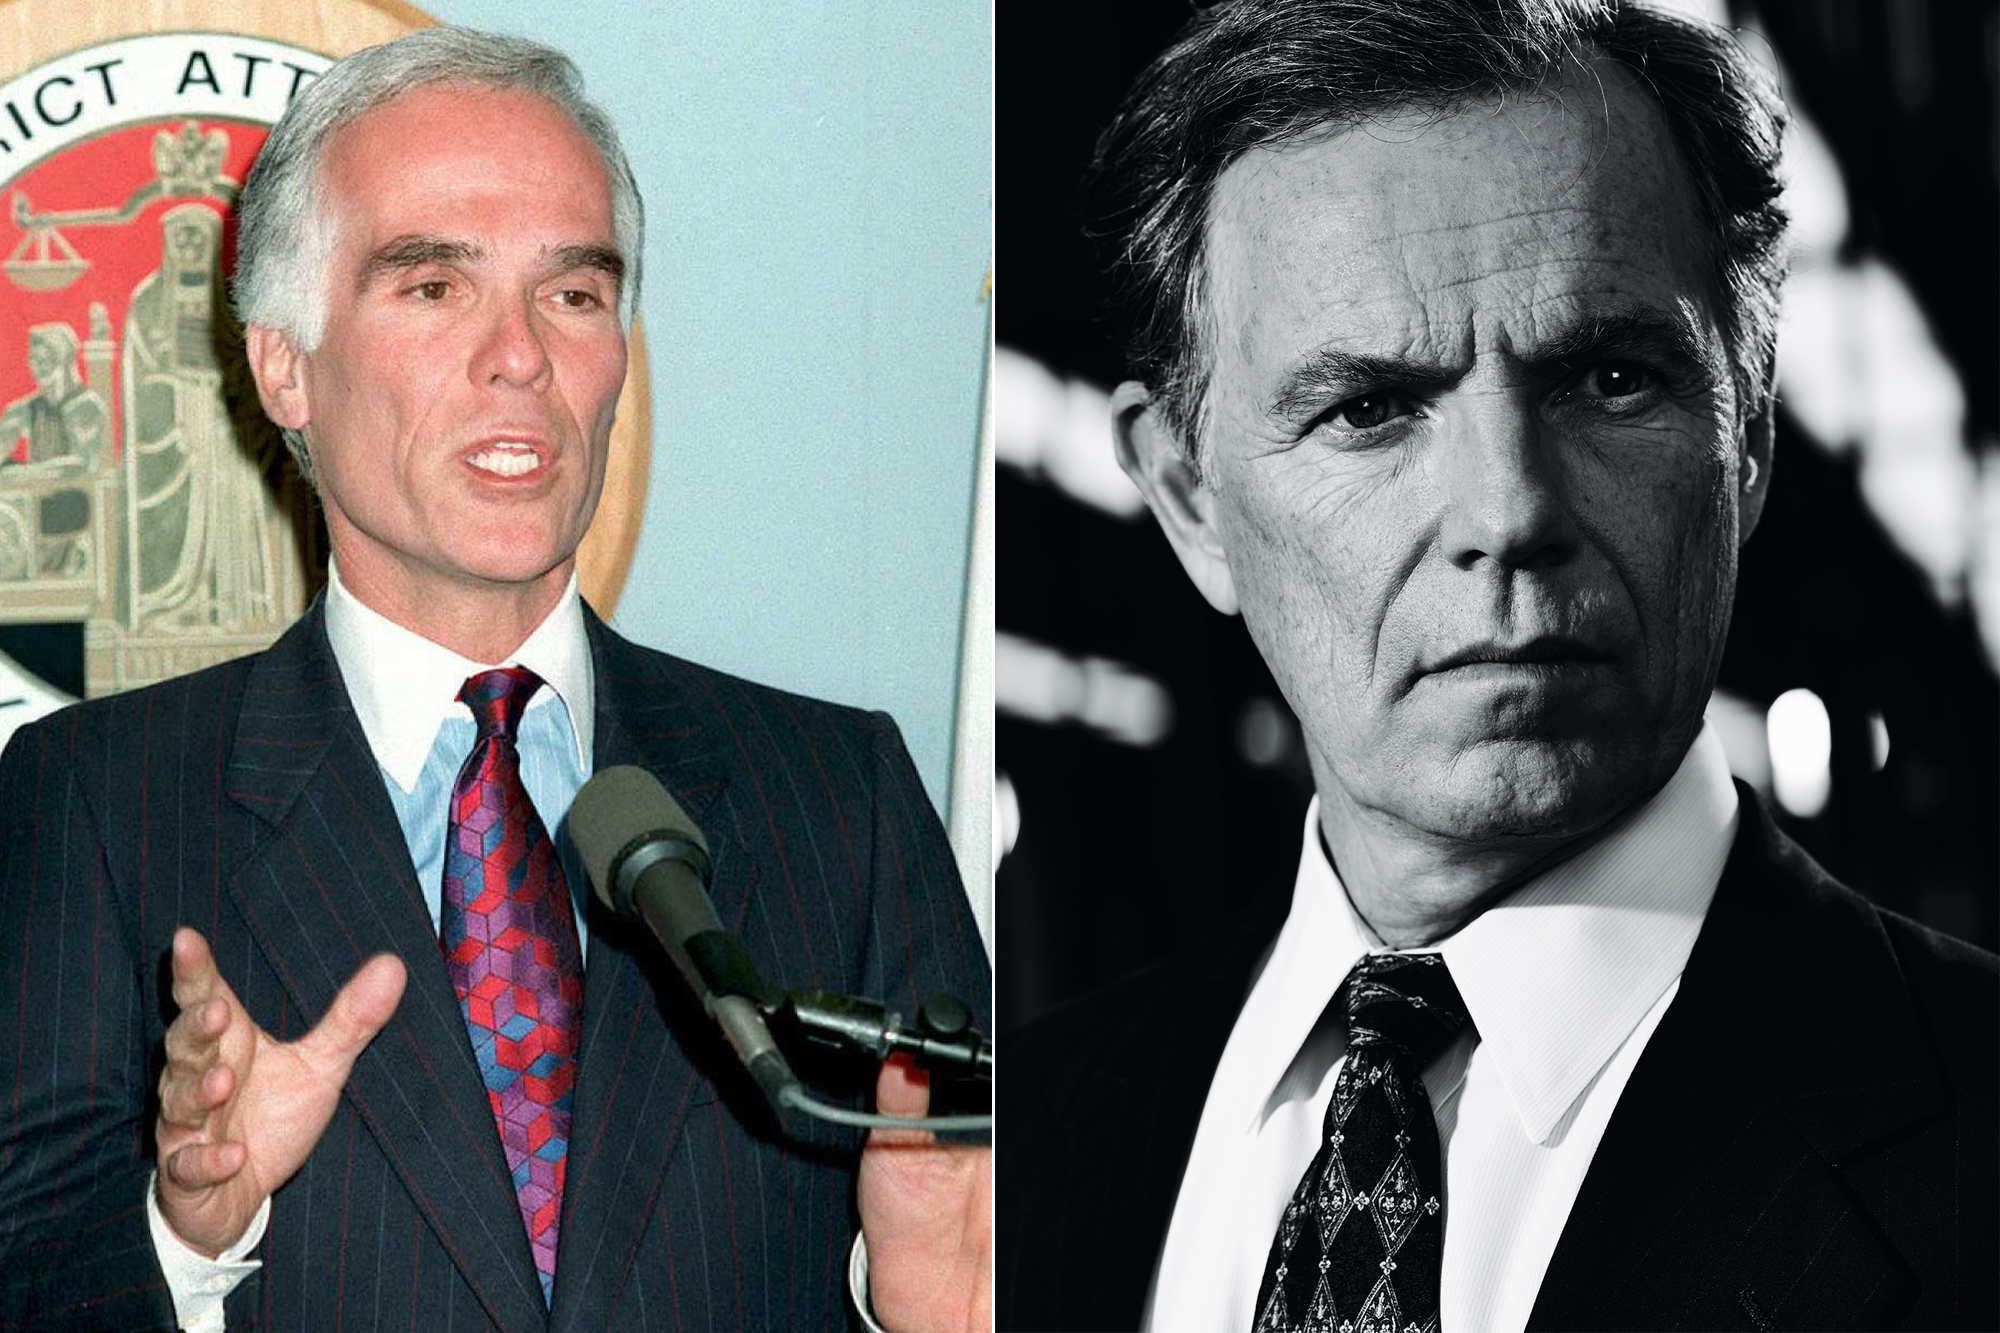 Left: Los Angeles District Attorney Gil Garcetti; Right: Bruce Greenwood.